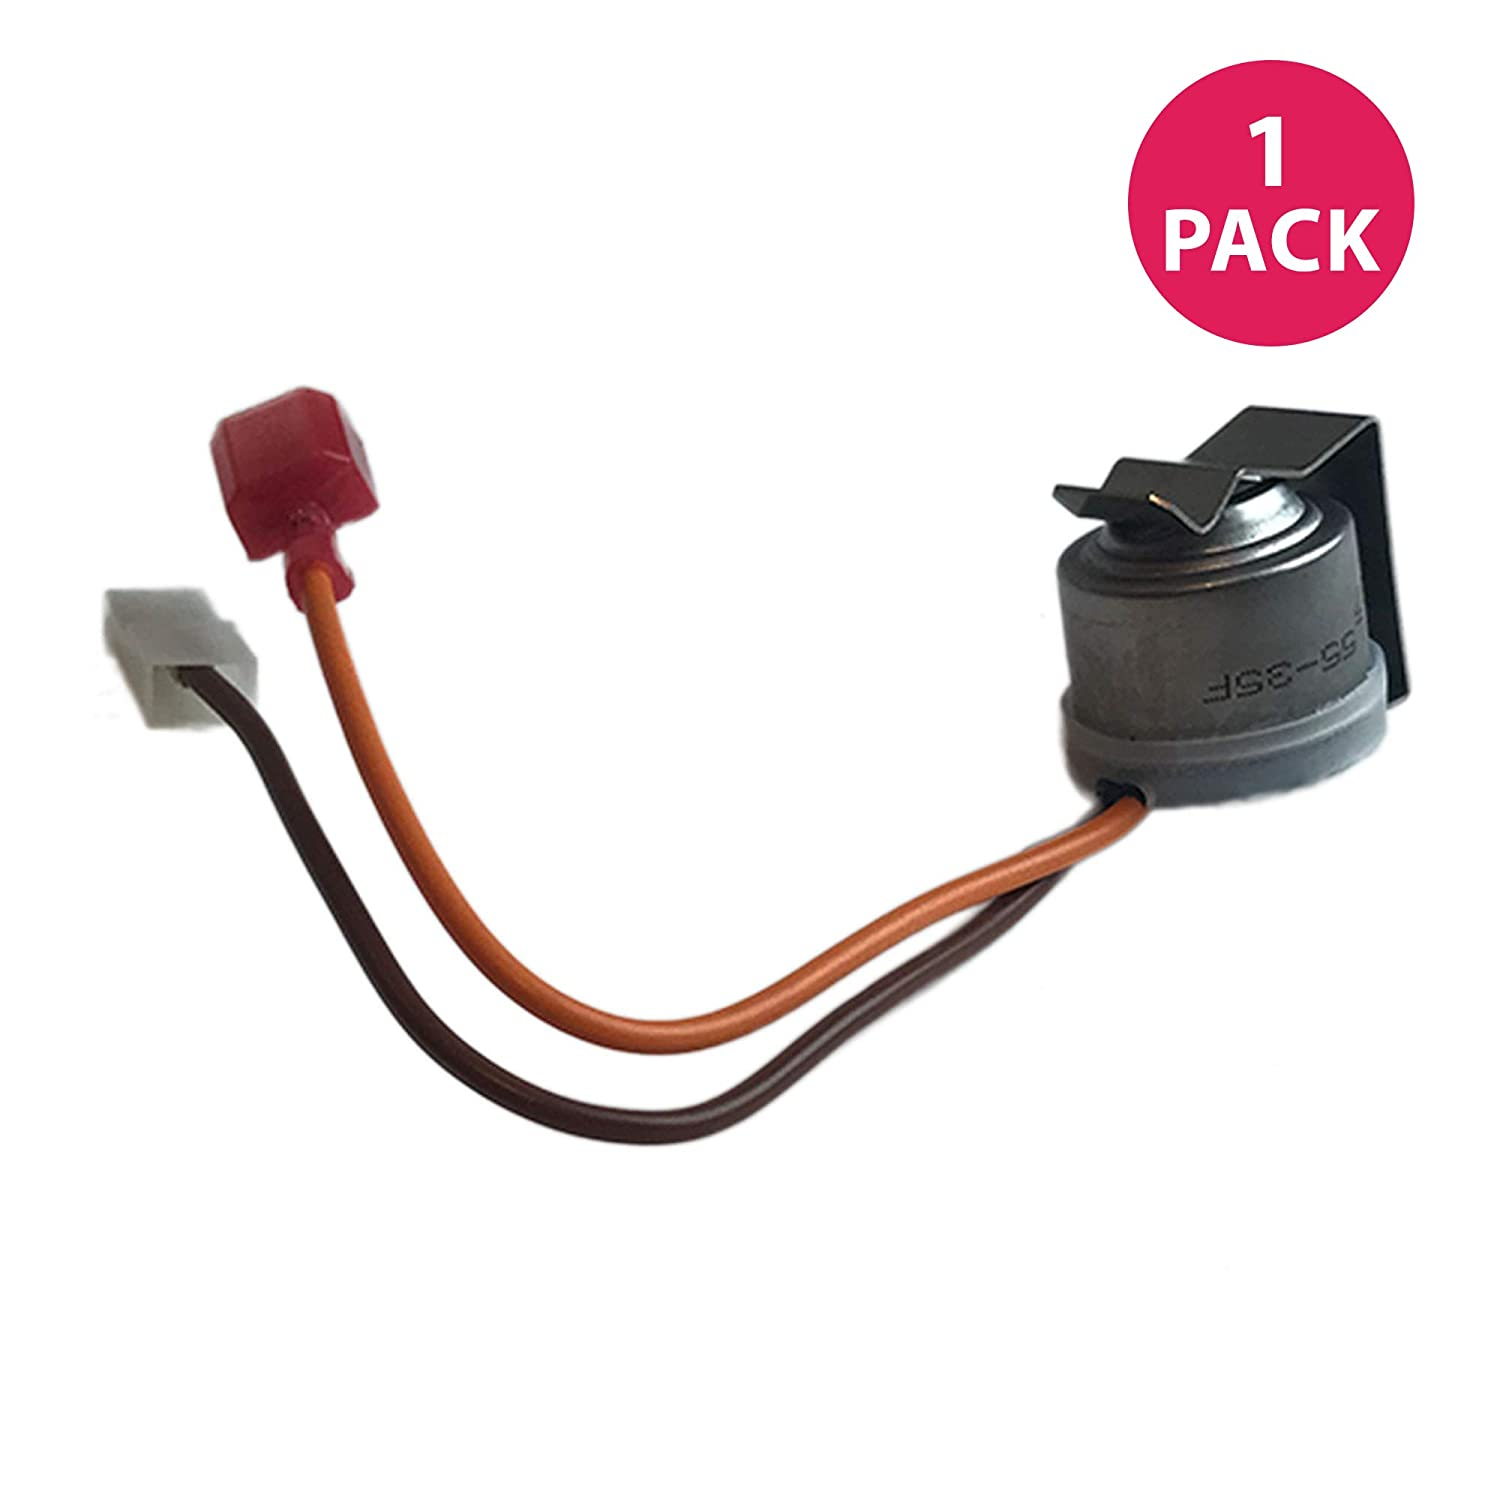 Think Crucial Replacement for Whirlpool Defrost Thermostat Fits Kenmore, Maytag, Sears & Roper Refrigerators, Compatible with Part 10442411, 10442401, 4344231, 8170725, C8898601, C8978401